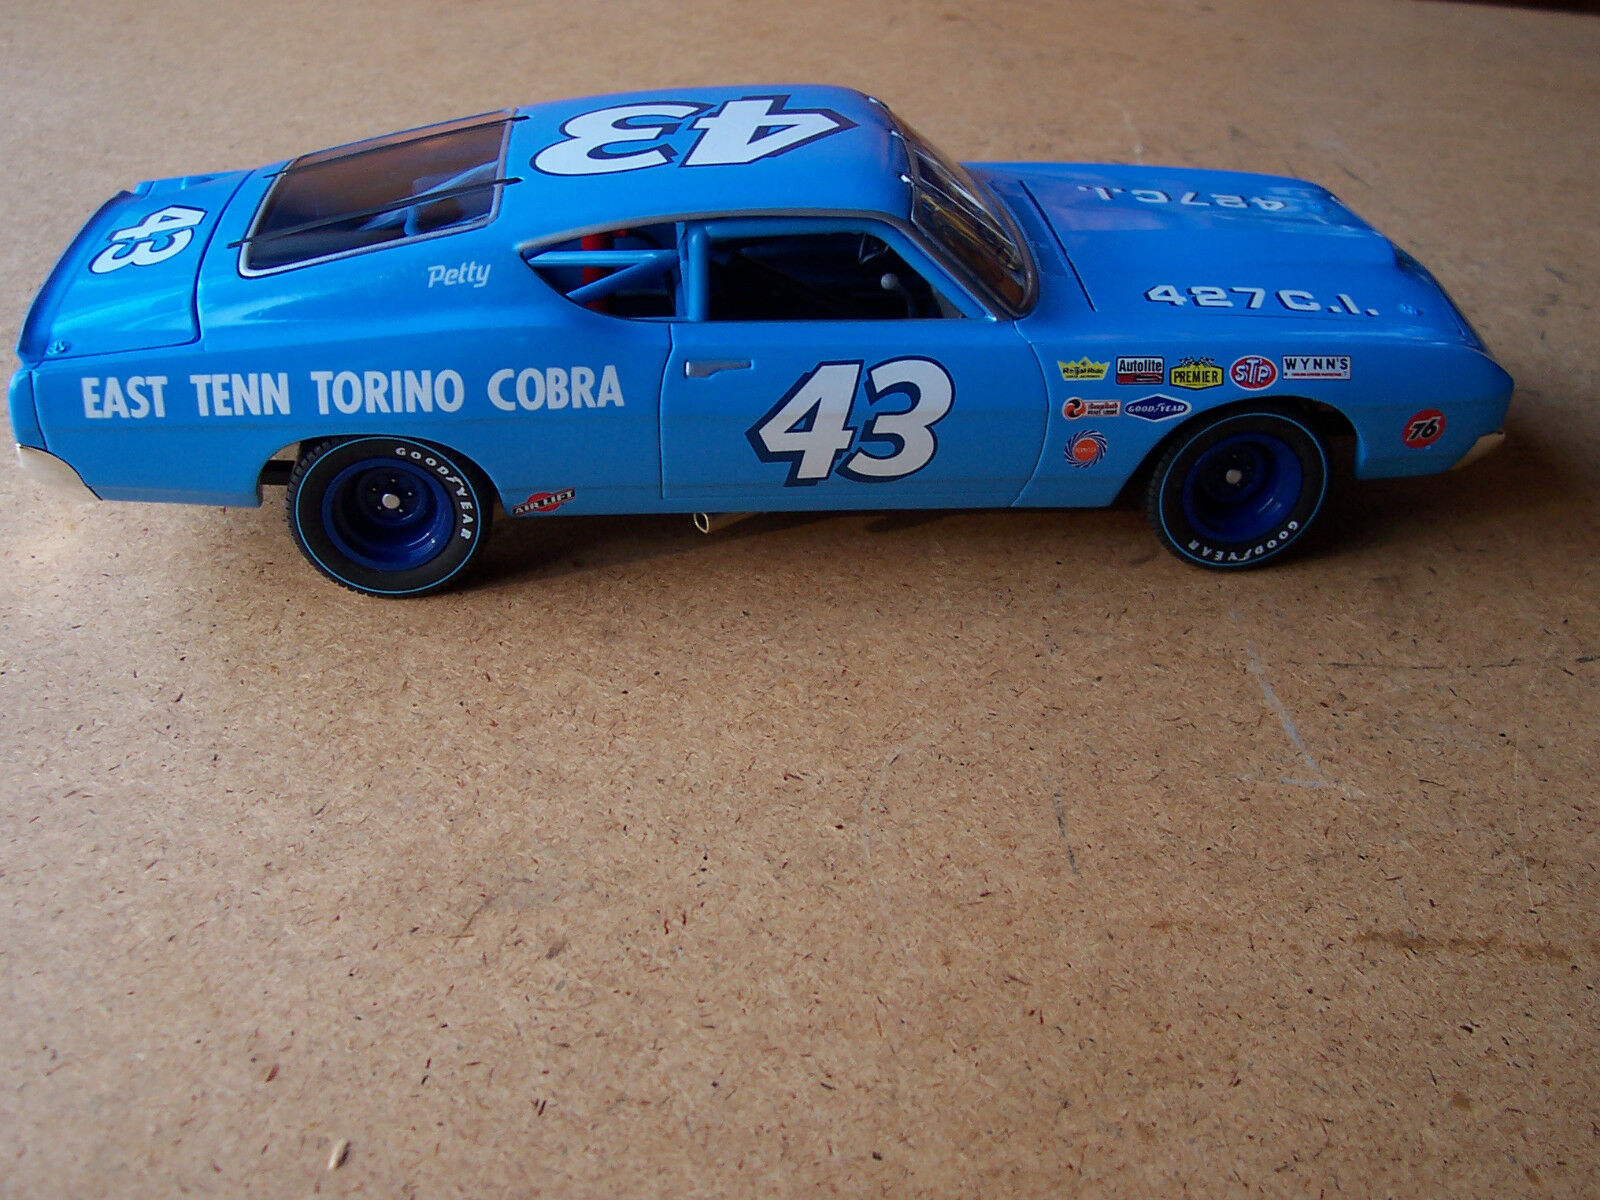 43 RICHARD PETTY AUTOGRAPHED SIGNED 1969 427 TORINO 1 24 DIE CAST NASCAR